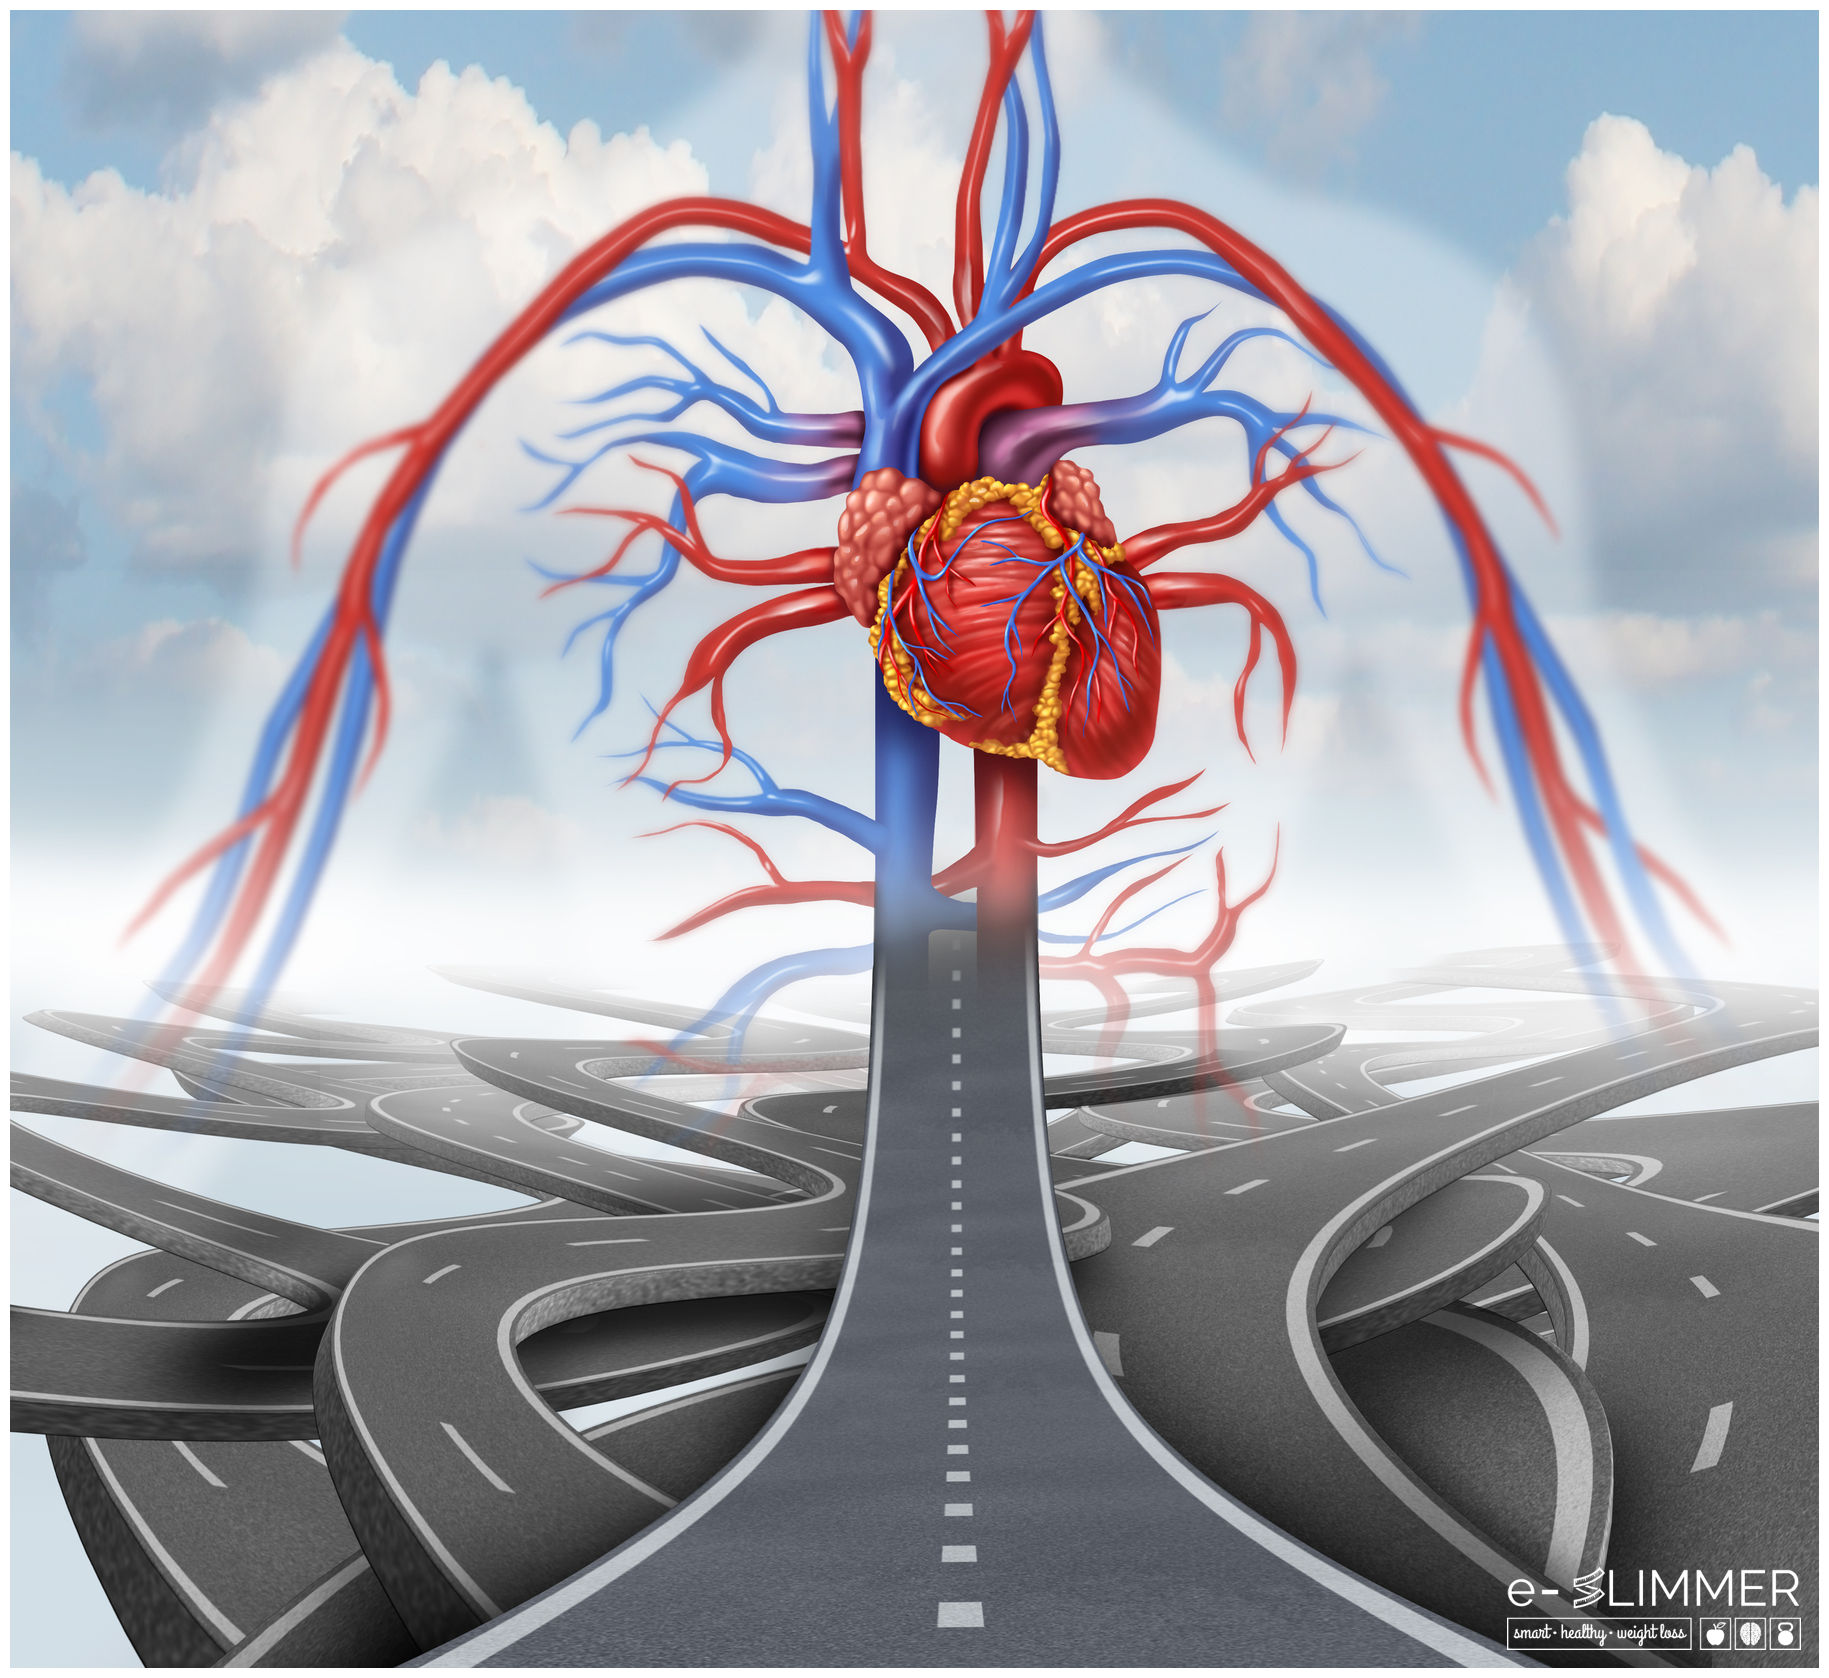 benefits of cardio exercise, your road to health